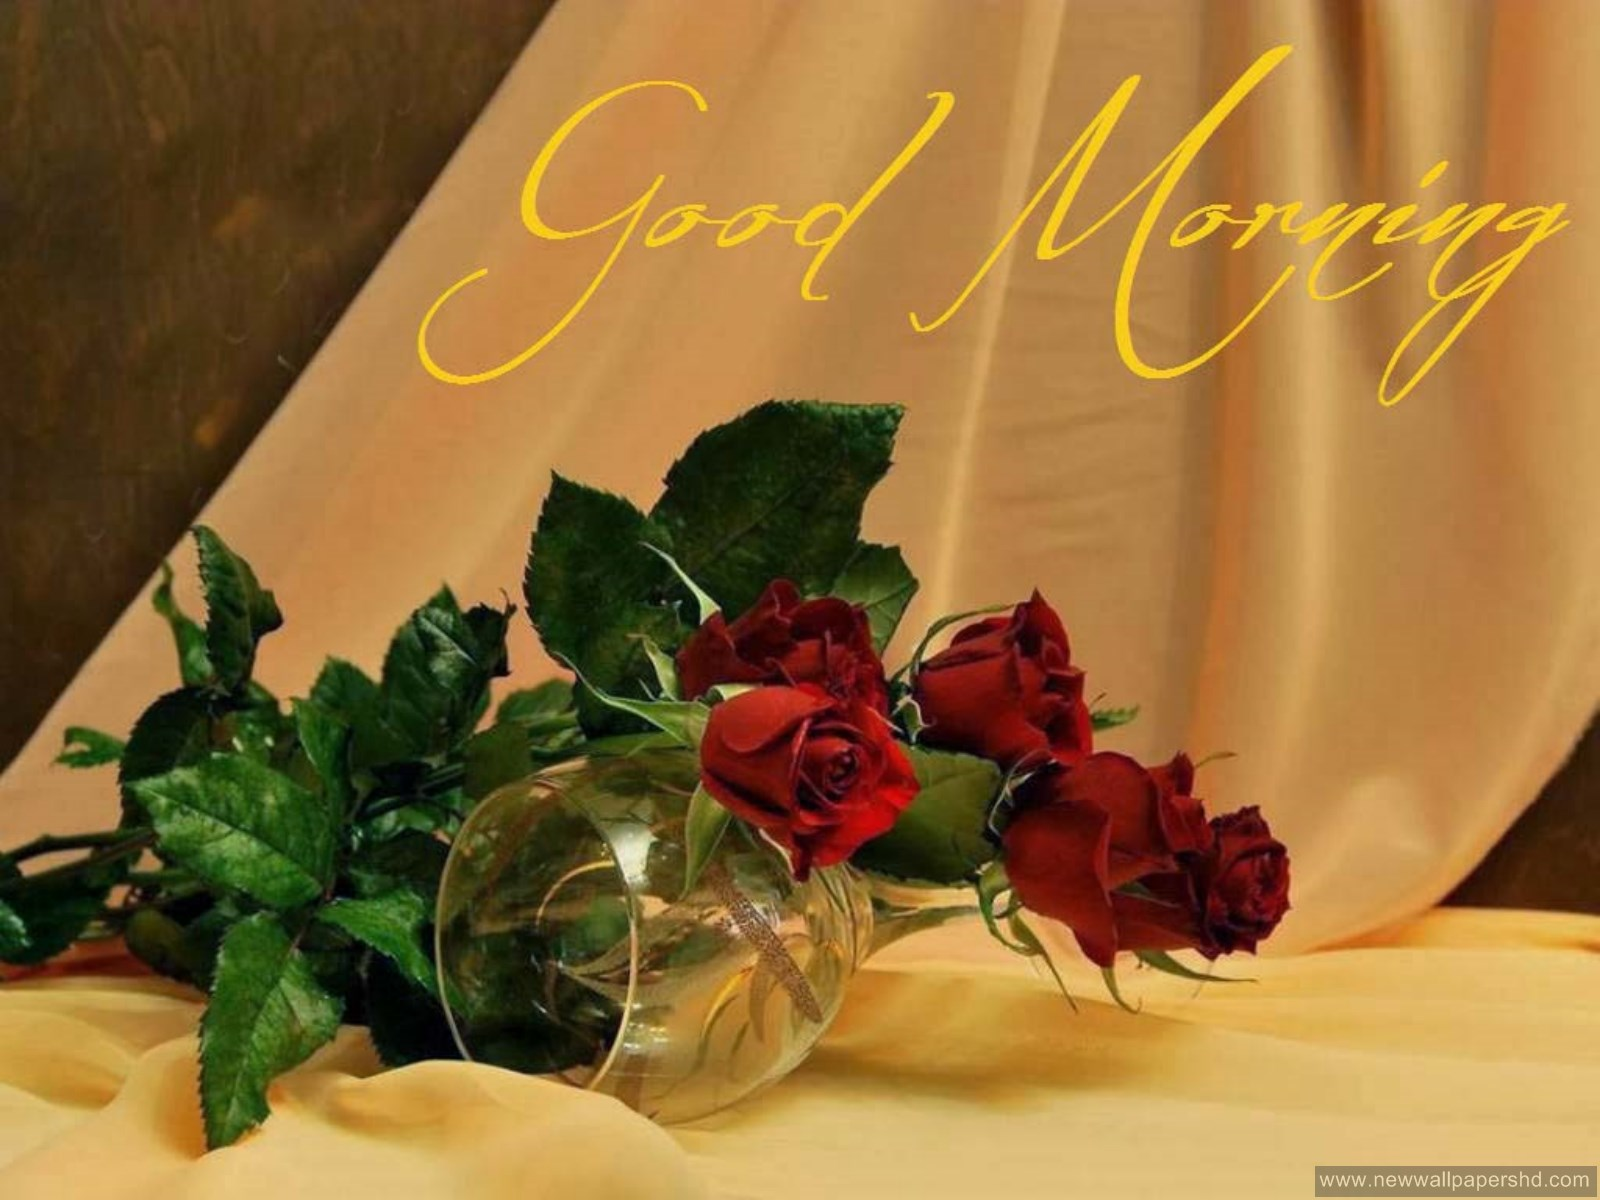 Good Morning 2019 HD Wallpaper 2016 2017